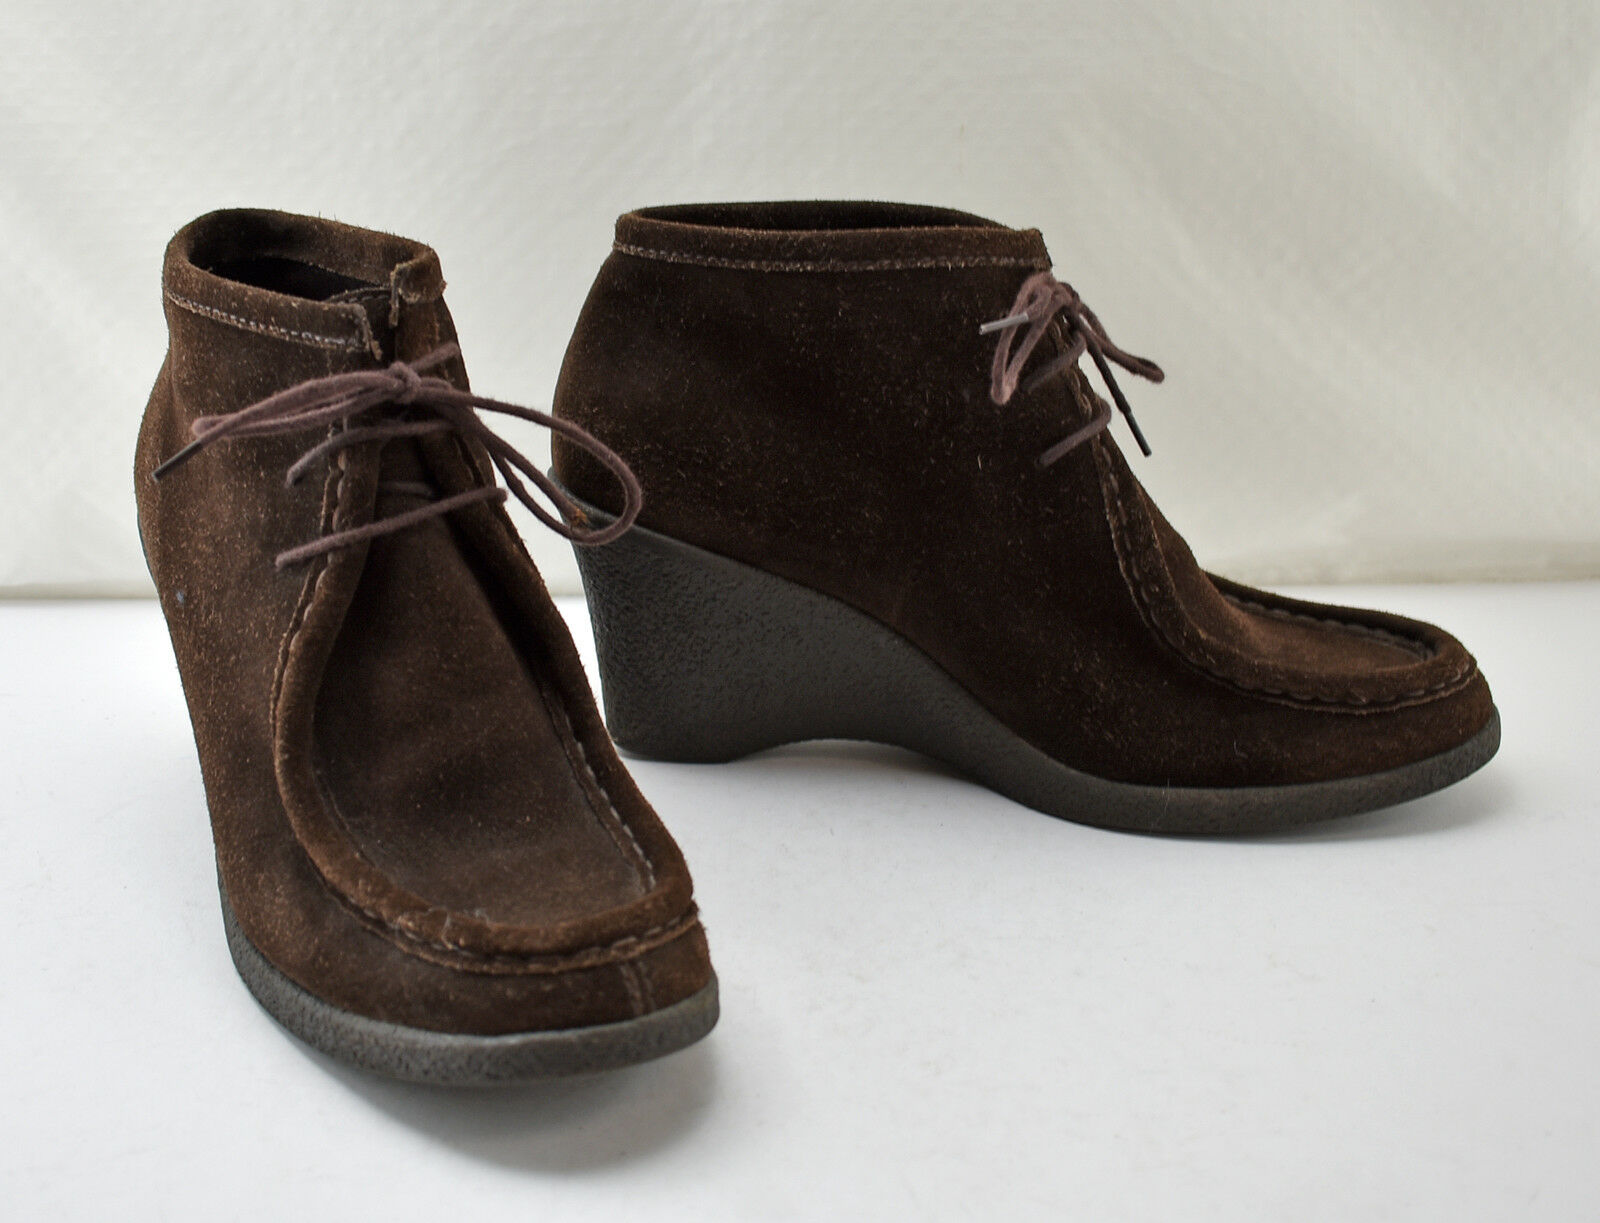 Banana Republic Brown Suede Leather Wedge Heel Lace-Up Booties - Women's 9.5 M